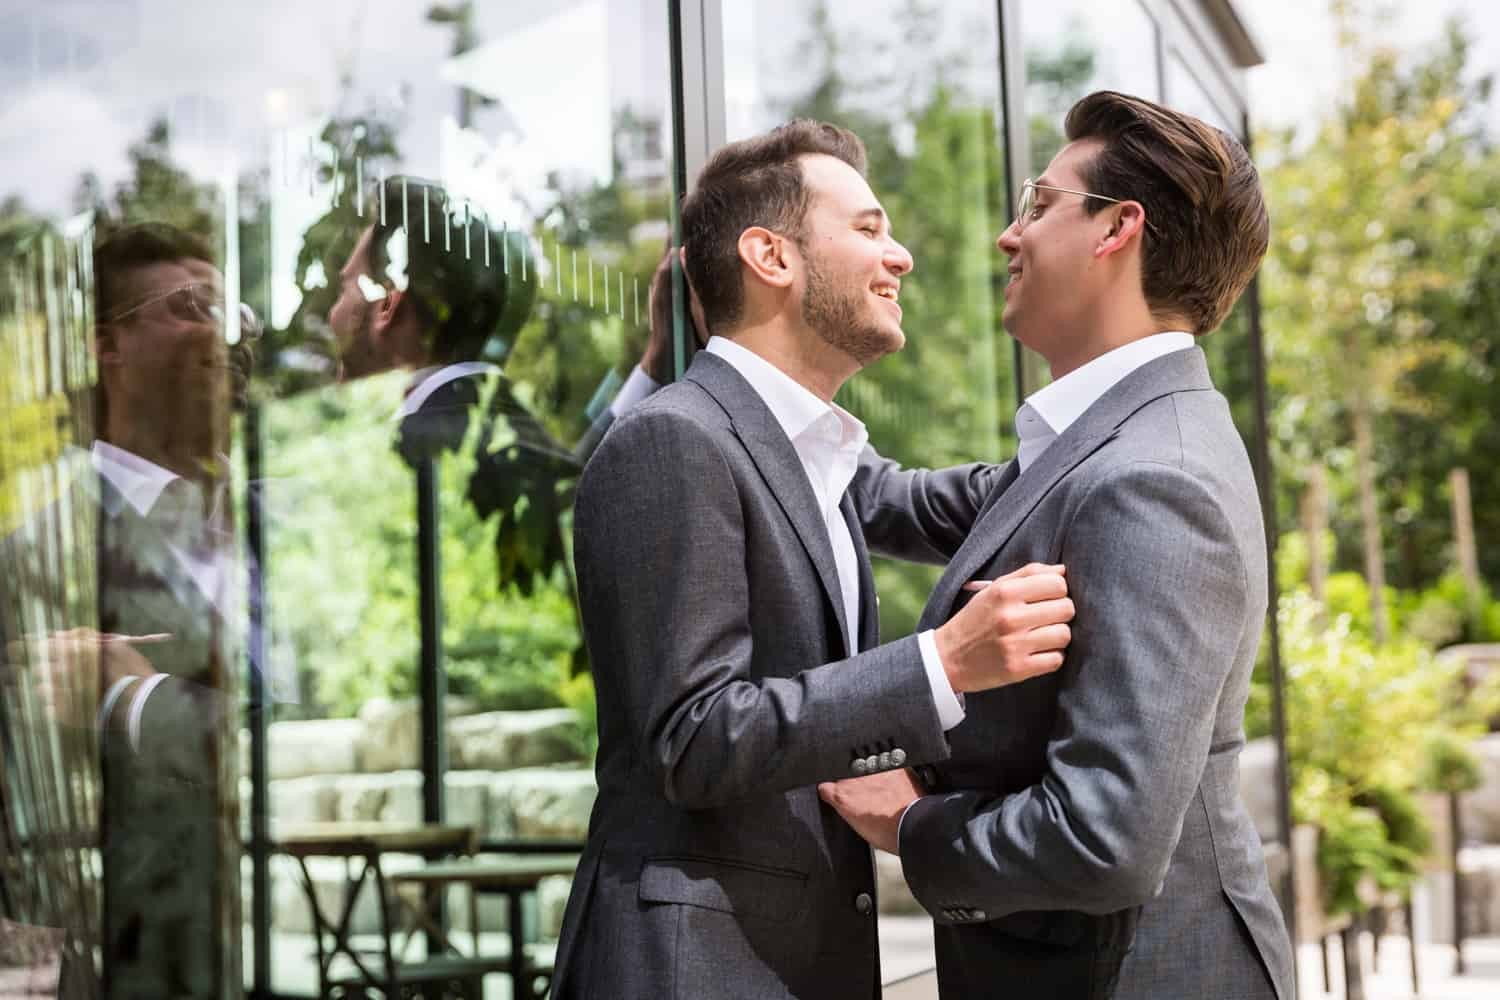 Greenpoint Loft wedding photos of two grooms leaning against glass wall and laughing